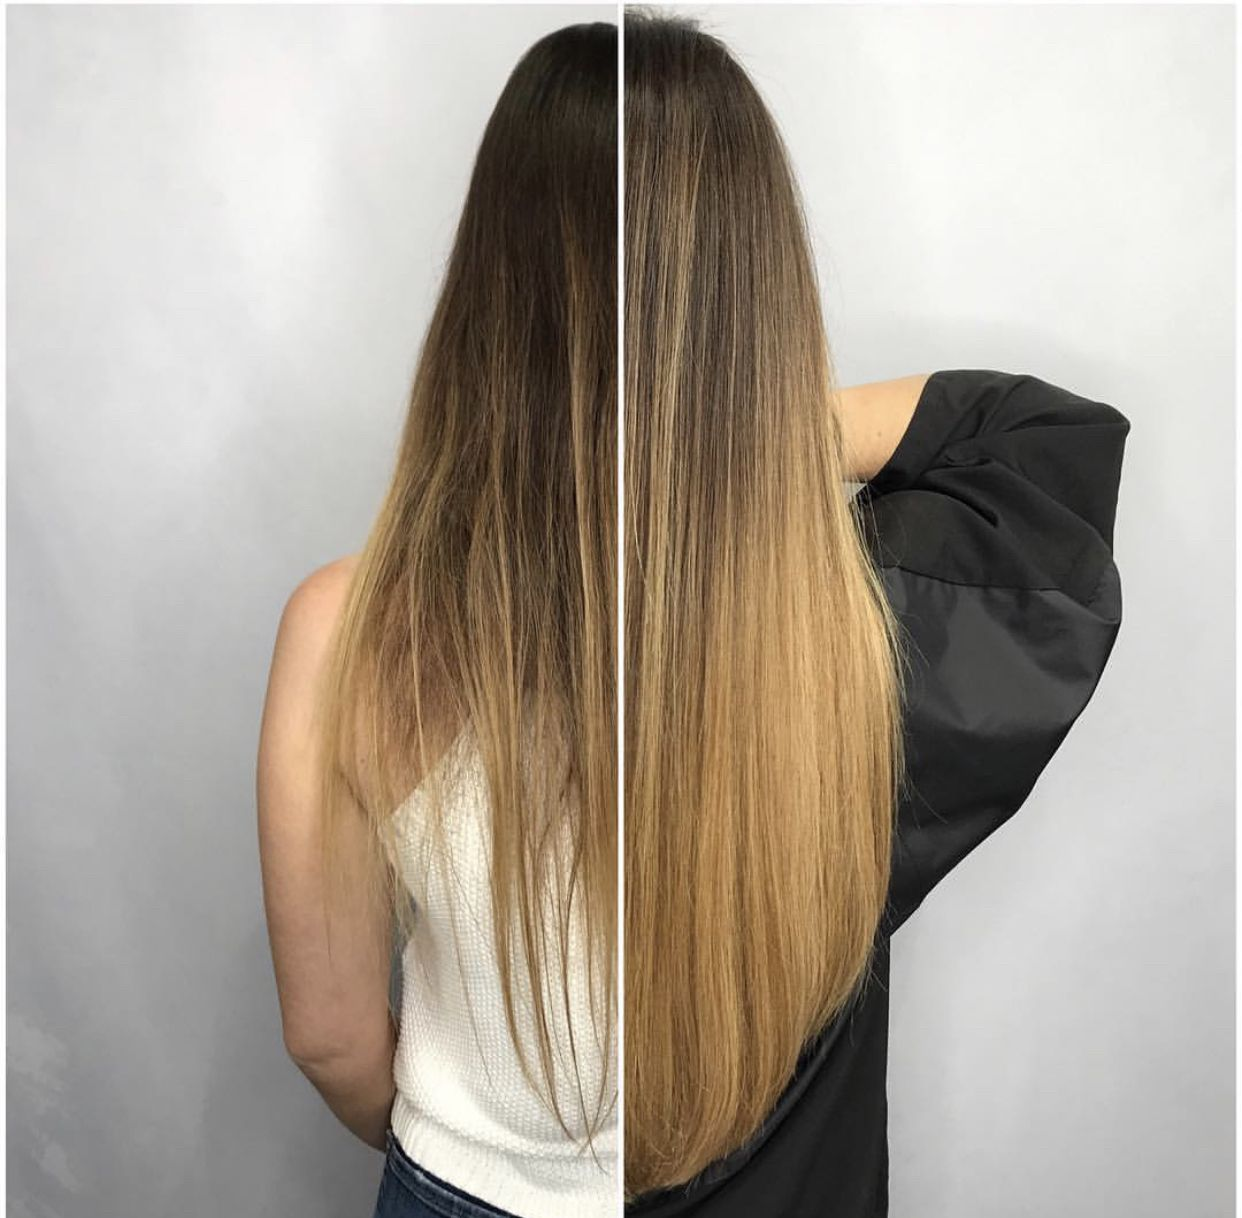 Greatlengths Hair Extensions Fusion Hair Brown Hair Trends Cold Fusion Hair Extensions